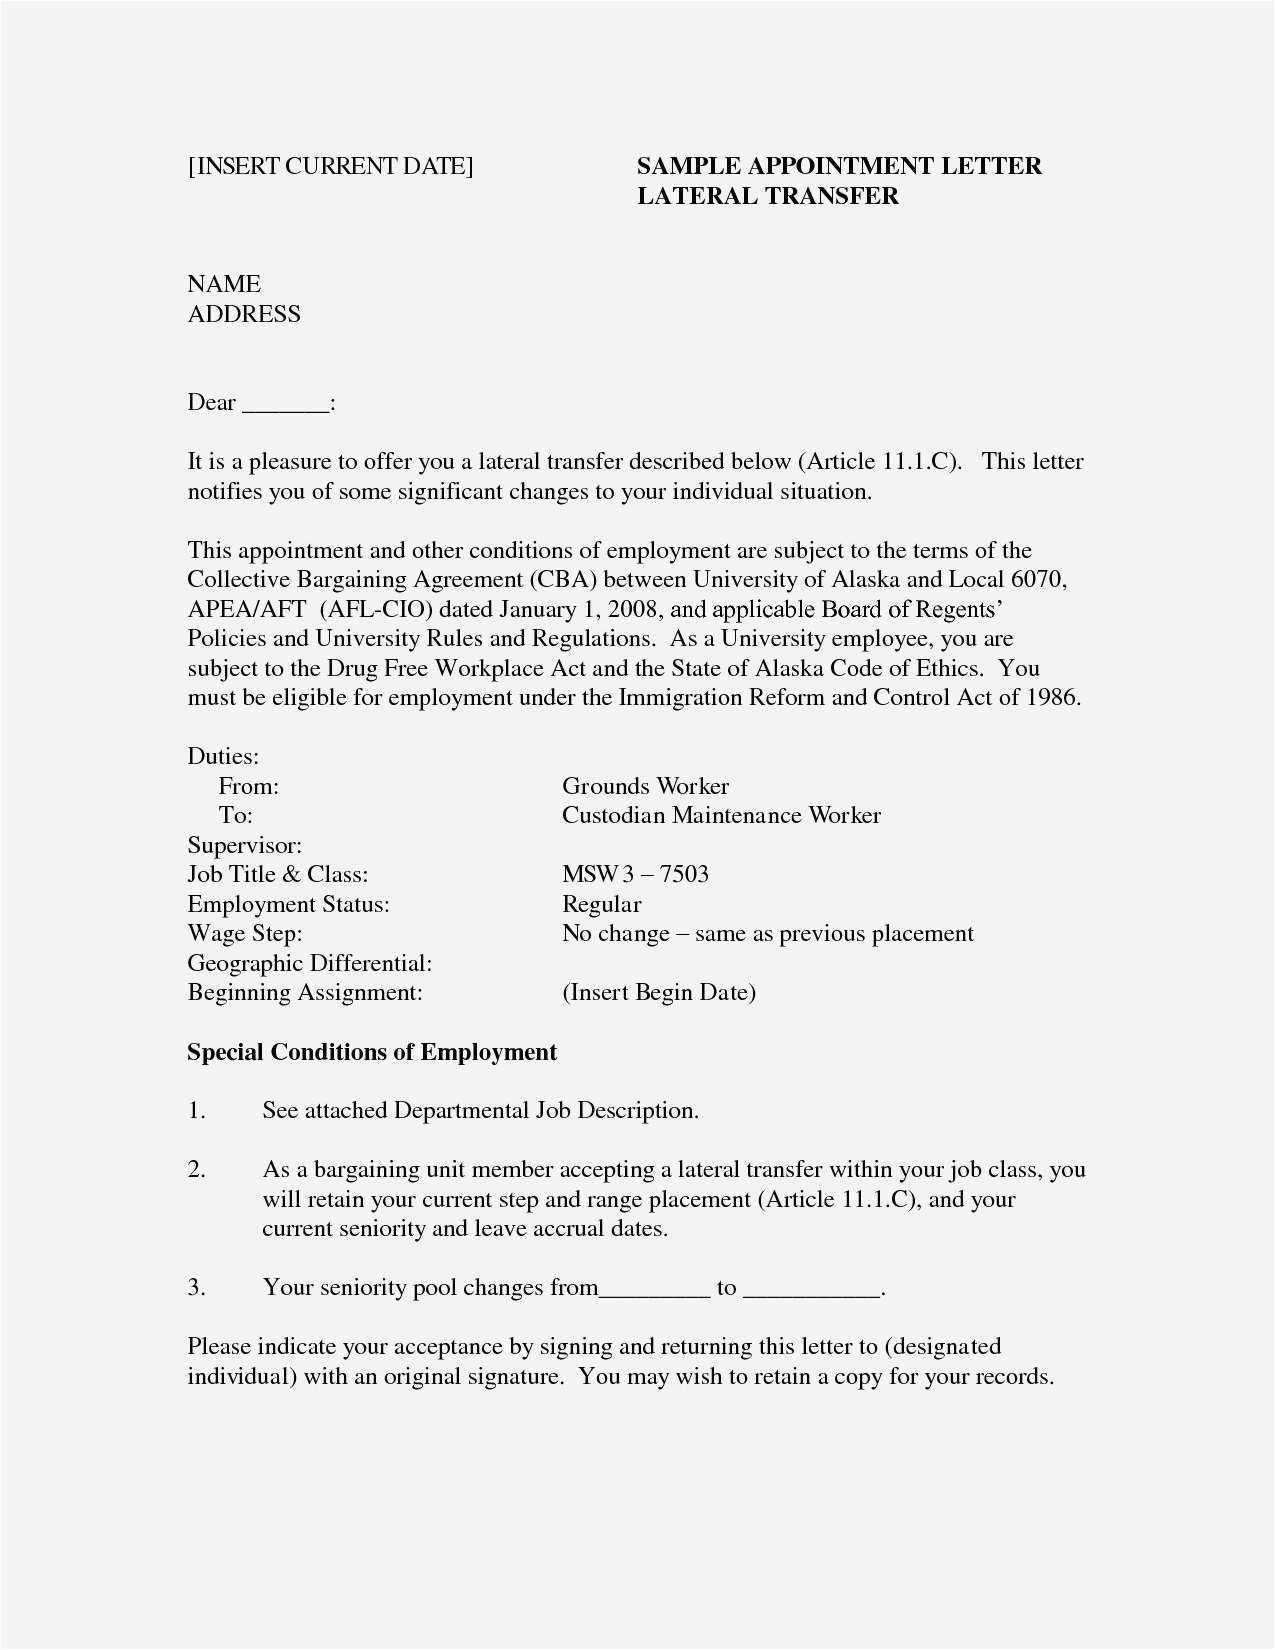 Construction Superintendent Resume Template - Resume for Superintendent Position New Resume for Self Employed